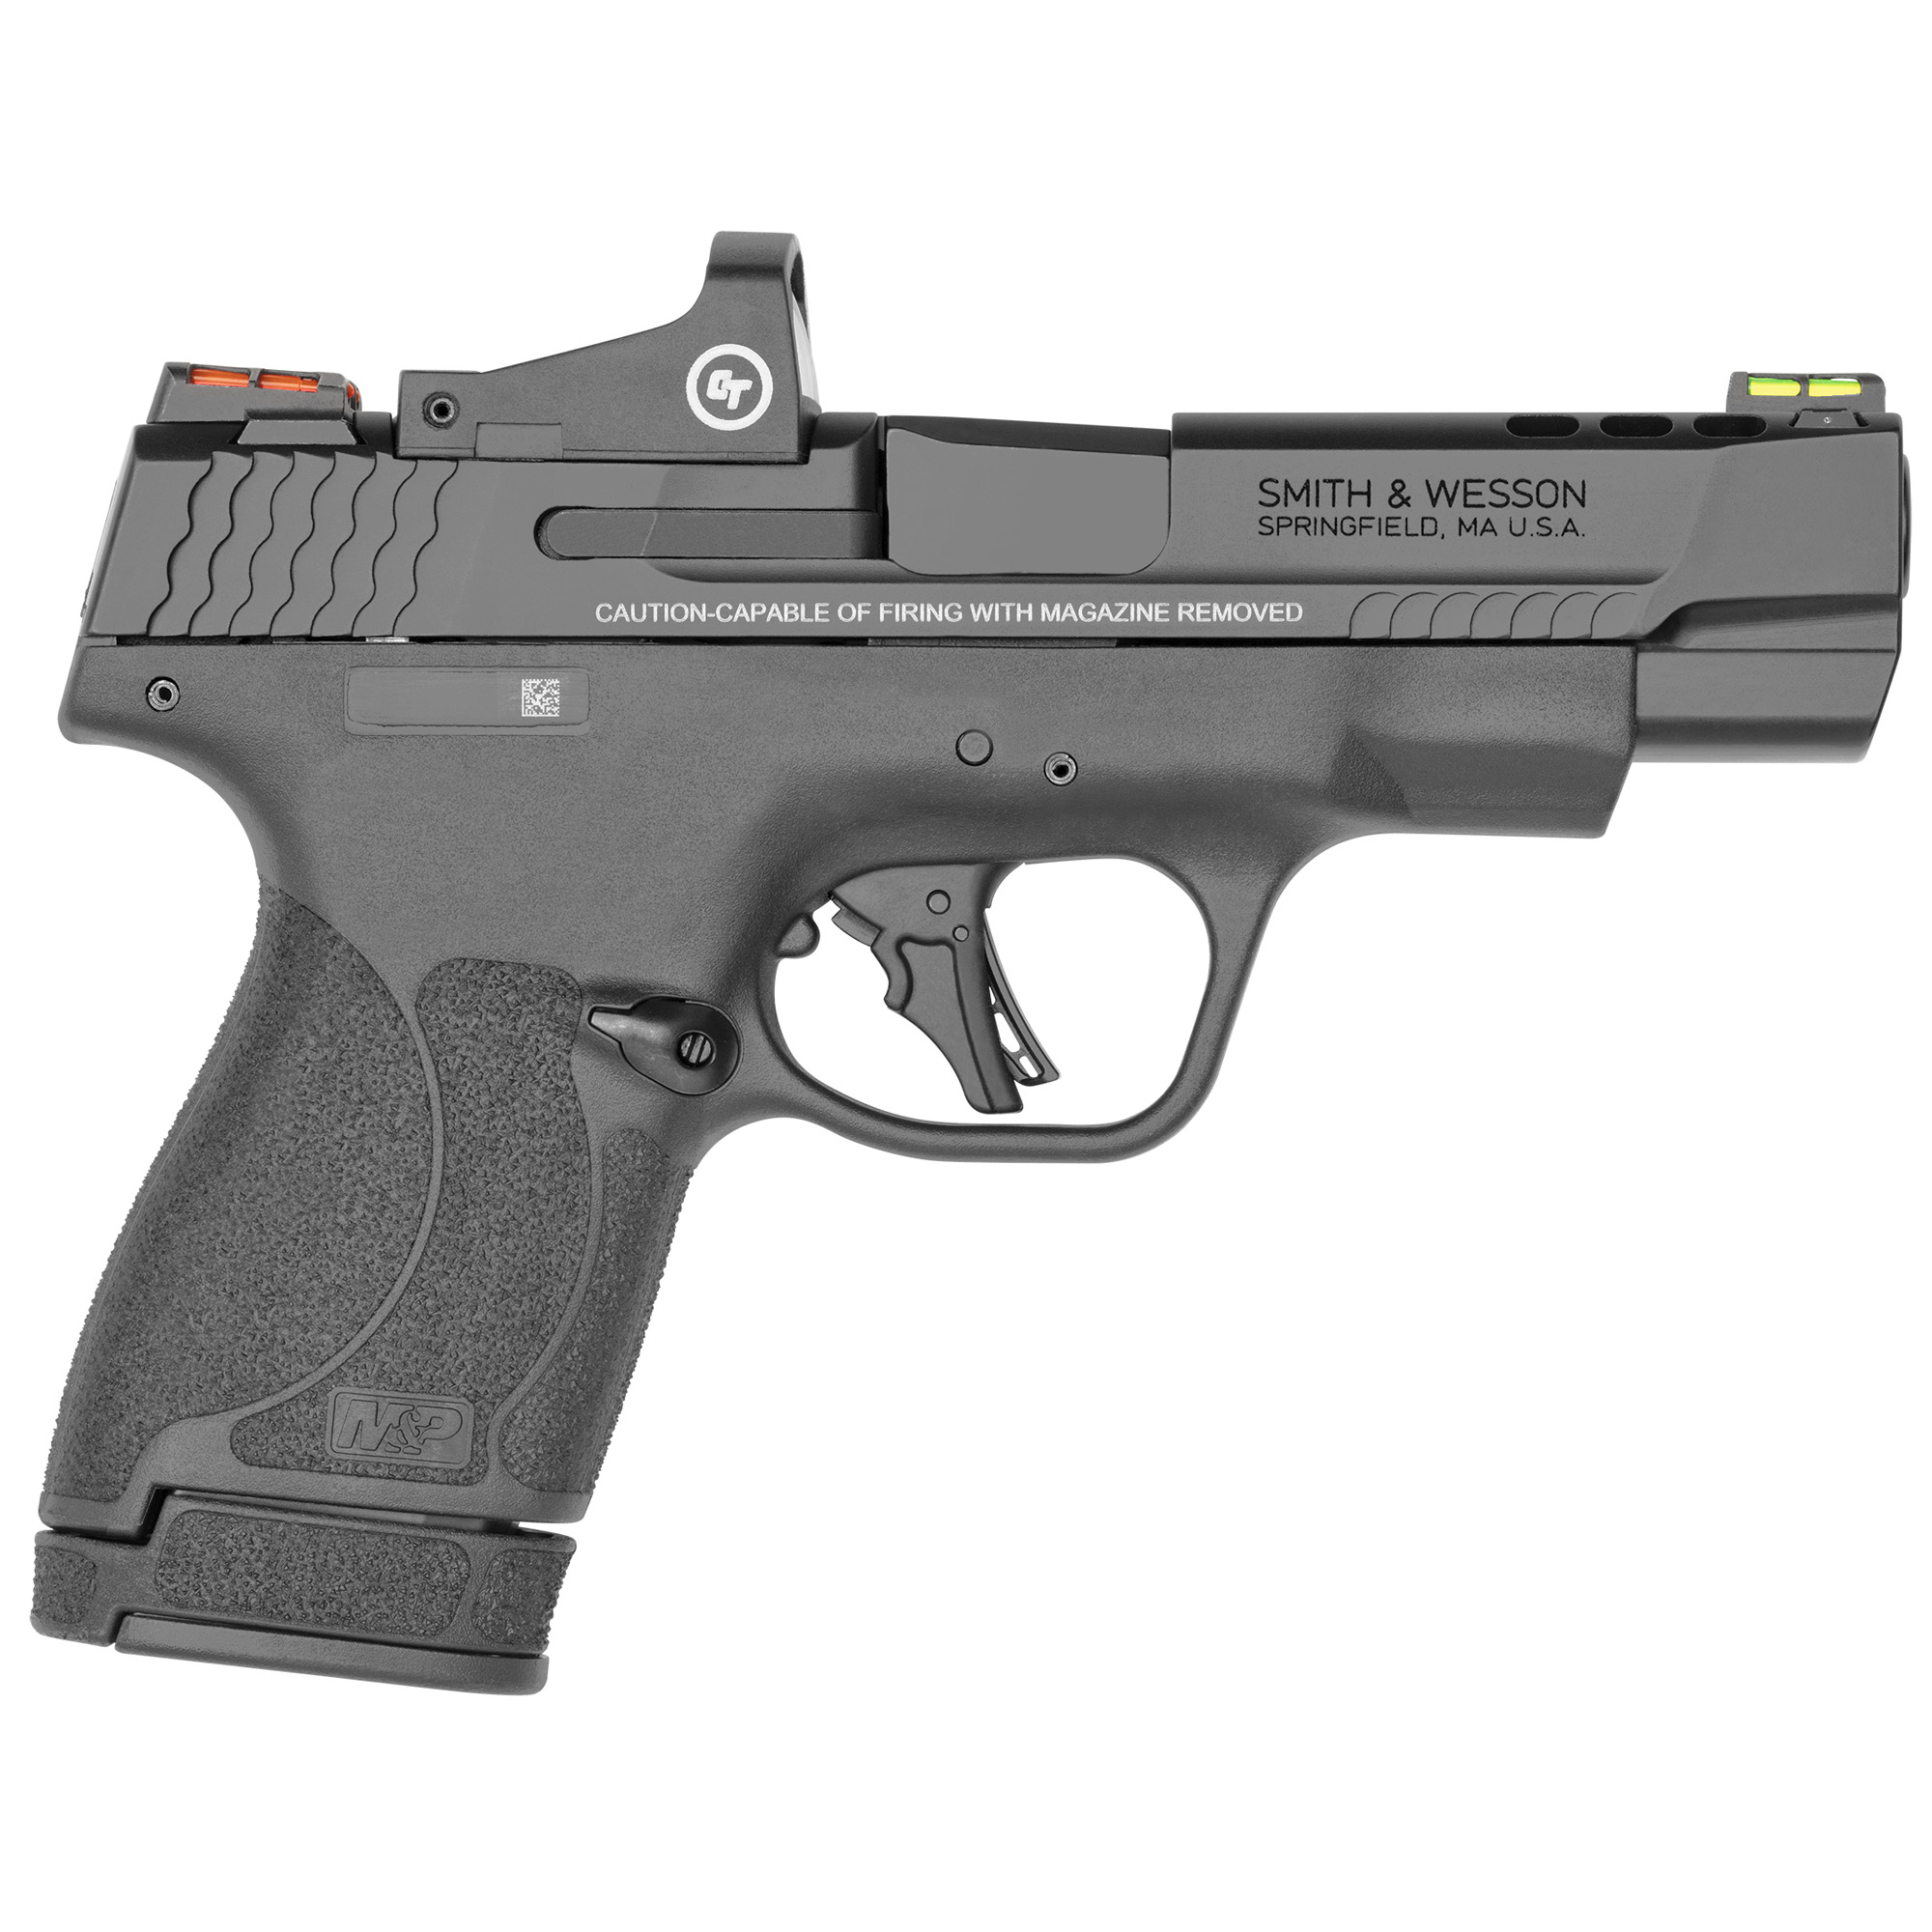 """Smith & Wesson Shield Plus Performance Center Striker Fired 4"""" 9mm 13rd Fib-img-1"""